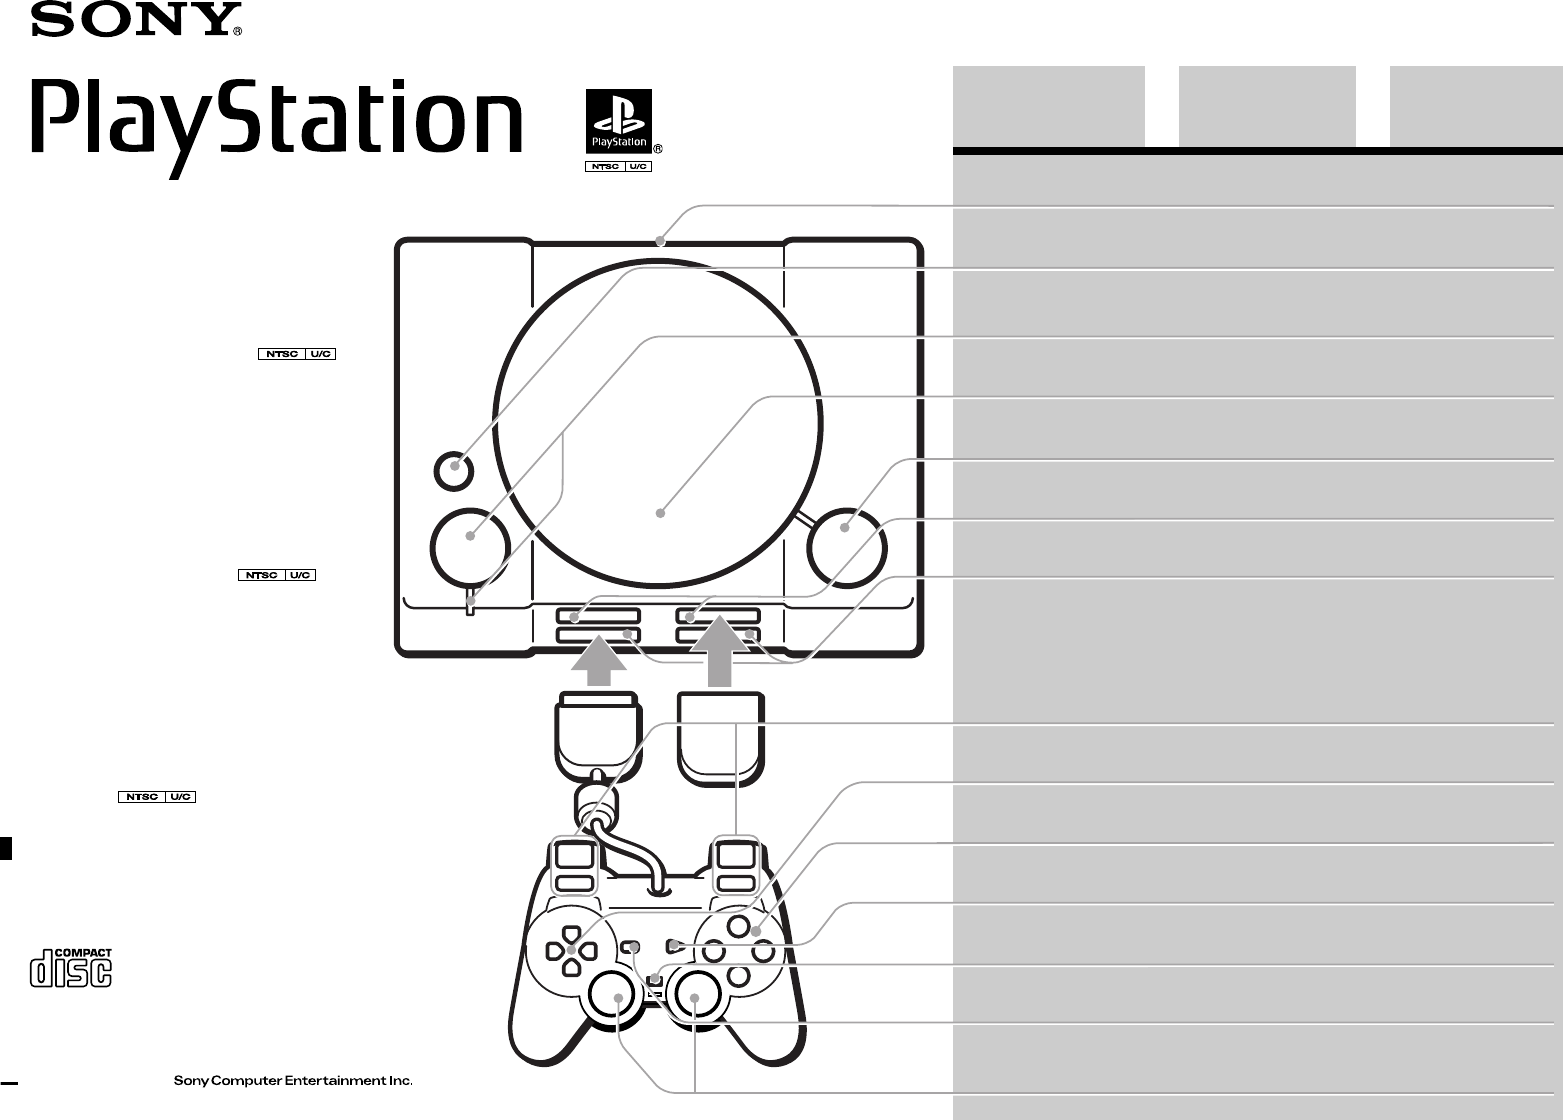 sony video game console playstation user guide manualsonline com rh videogame manualsonline com Instruction Manual Example User Guides Samples